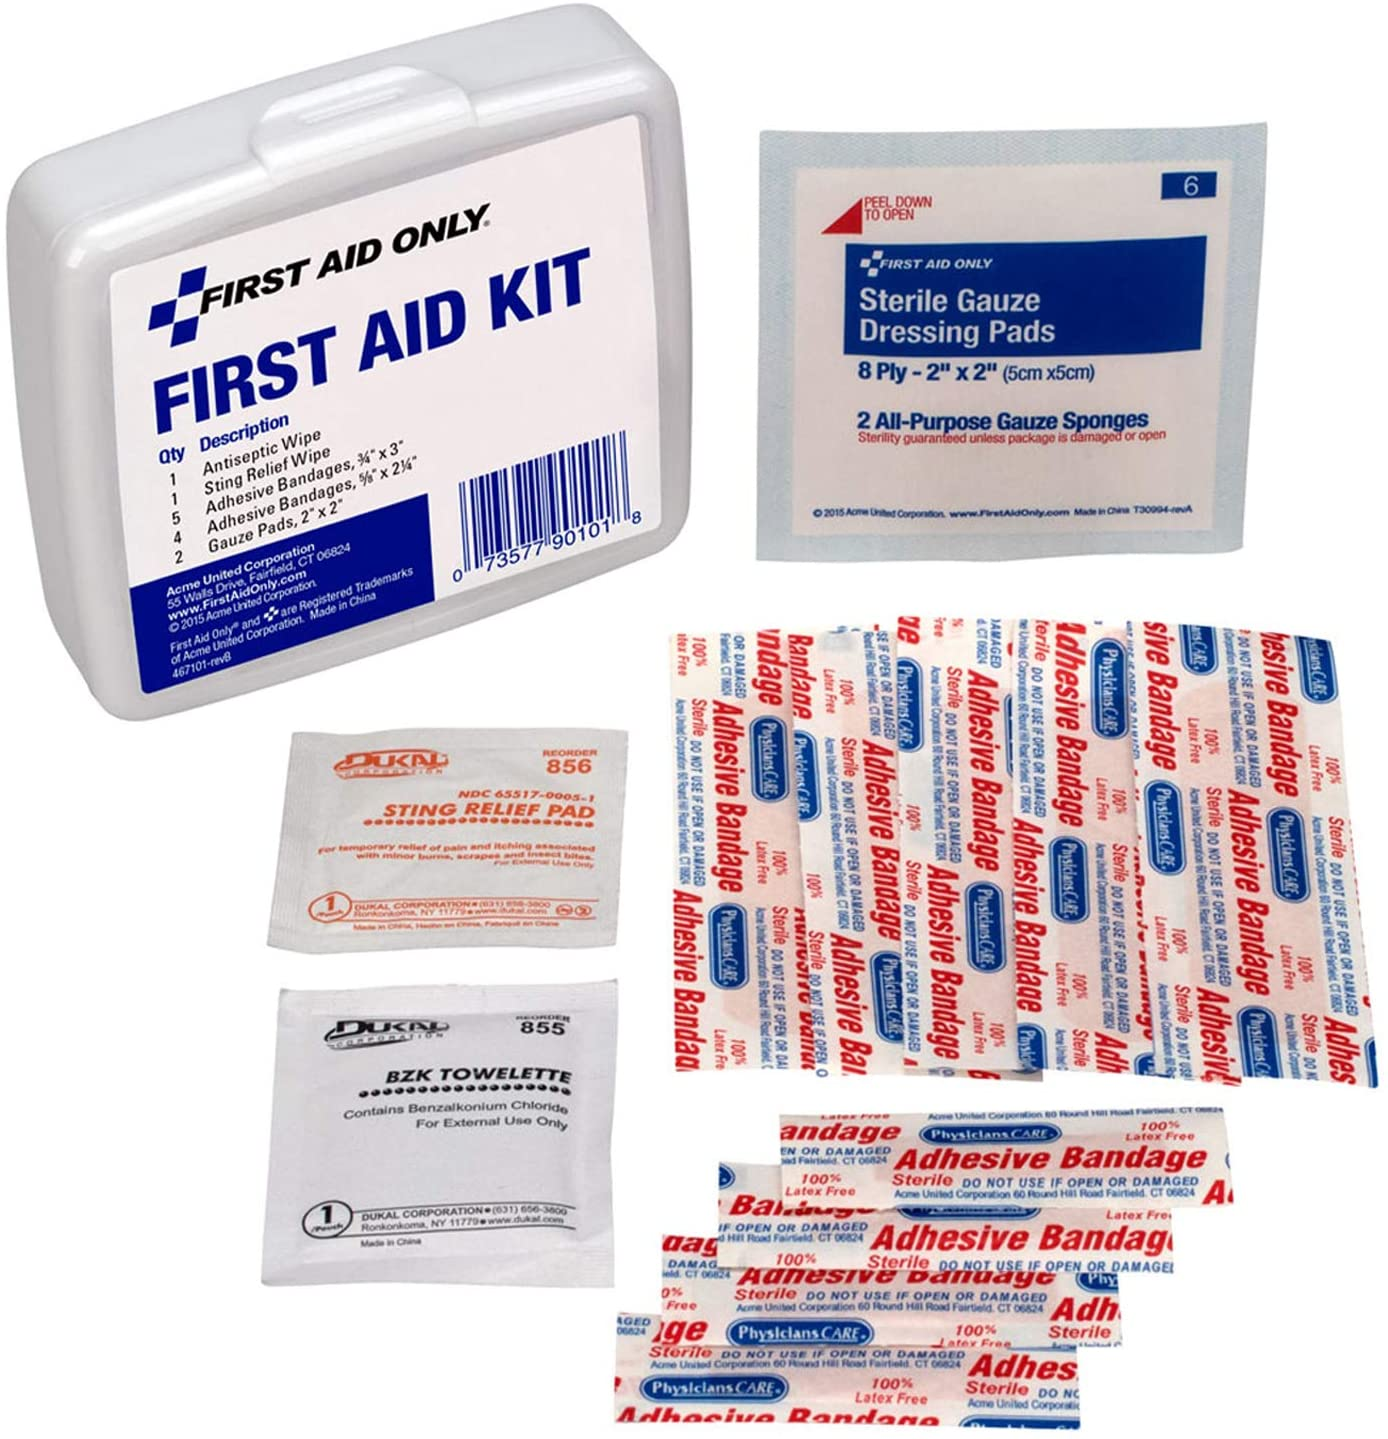 First Aid Only PhysiciansCare by High quality On White Go Brand Cheap Sale Venue 13 The Kit Piece